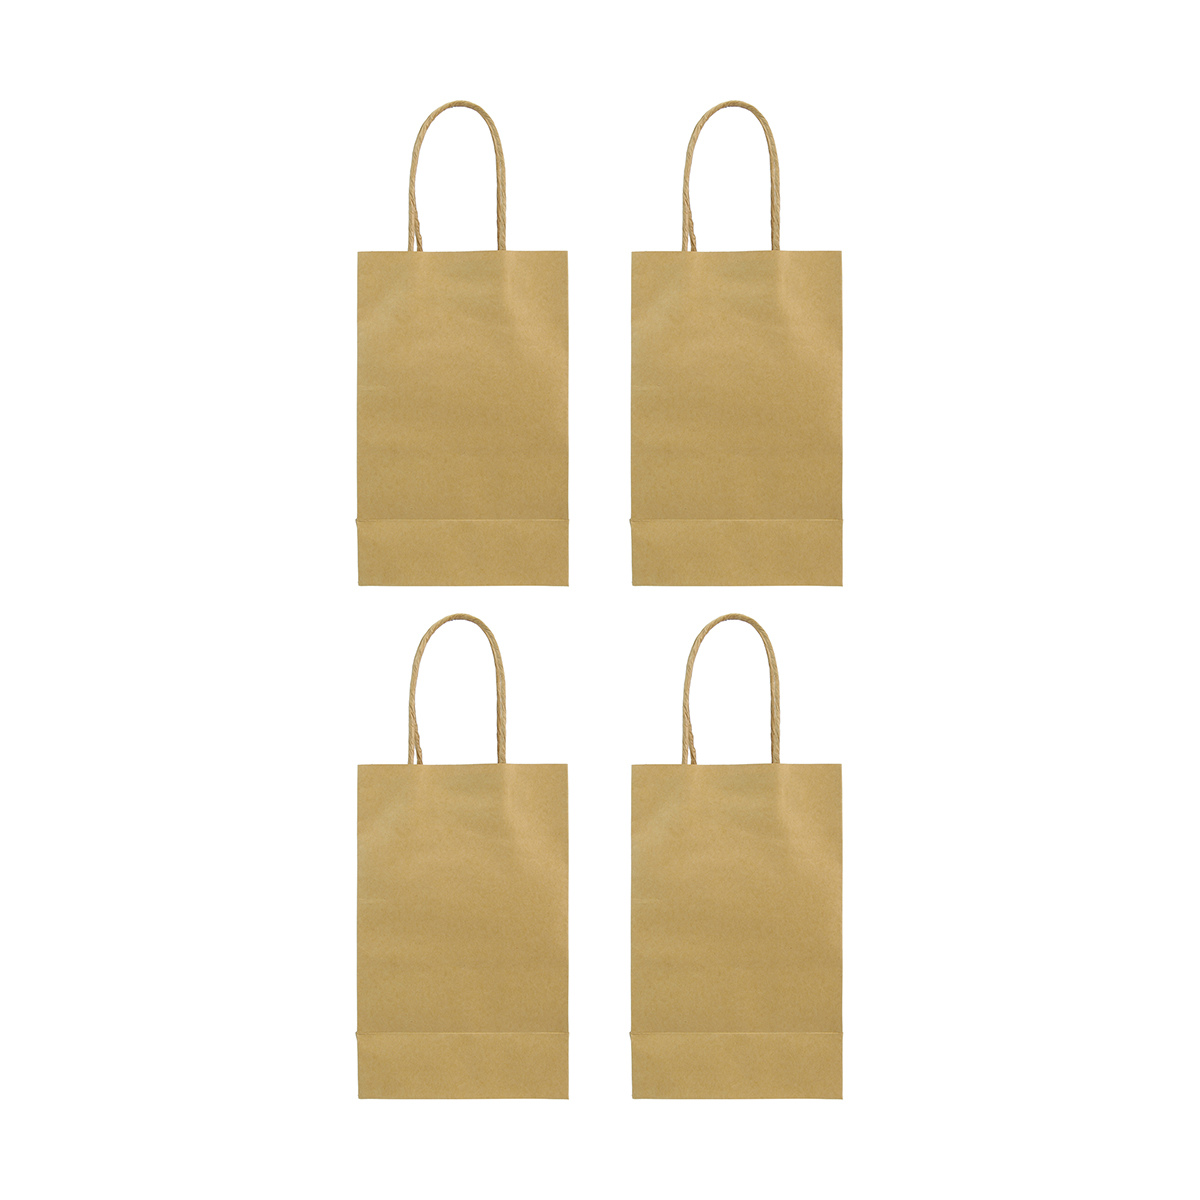 Brown Paper Bags With Handles Kmart Craft Bags 4 Pack Kmart